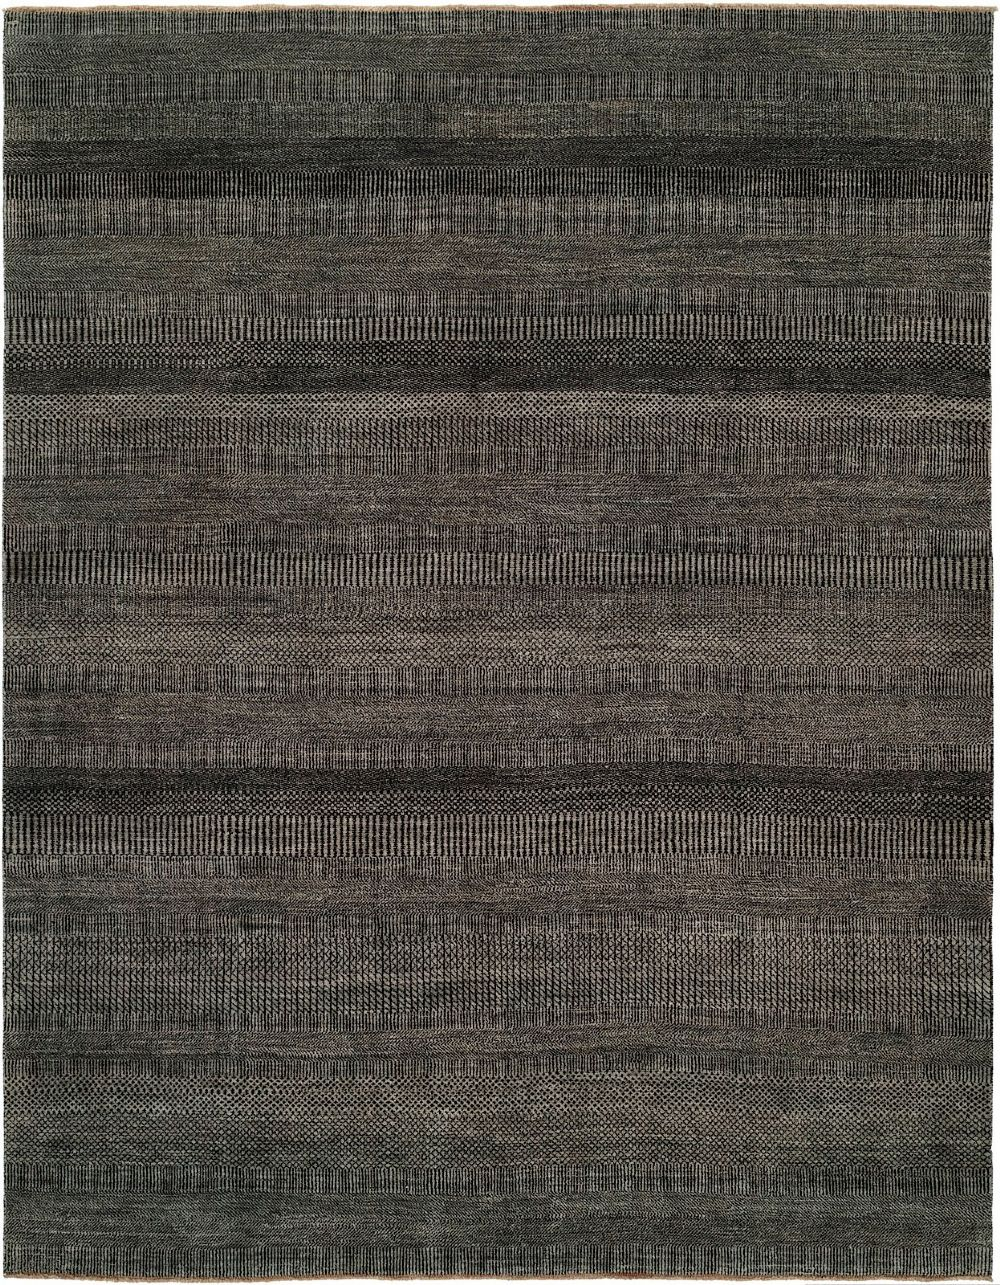 shalom brothers illusions traditional area rug collection